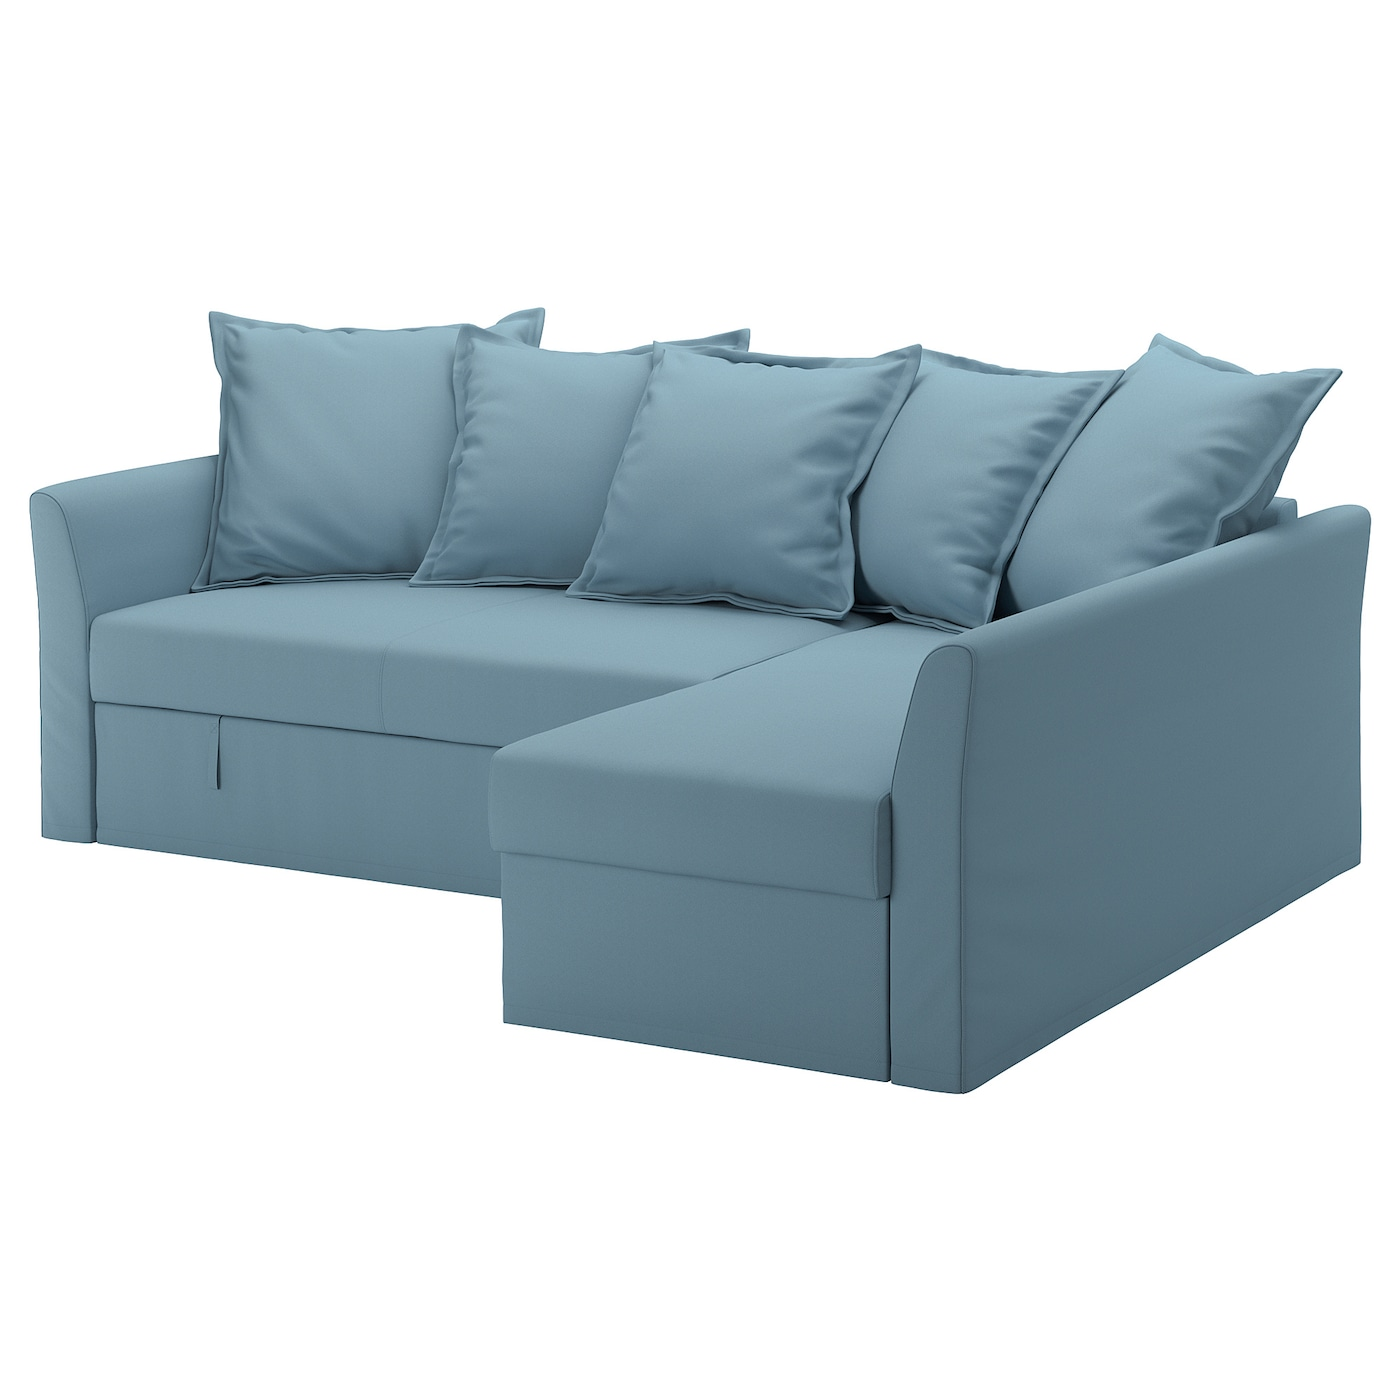 HOLMSUND Corner sofa bed Gräsbo light blue   IKEA